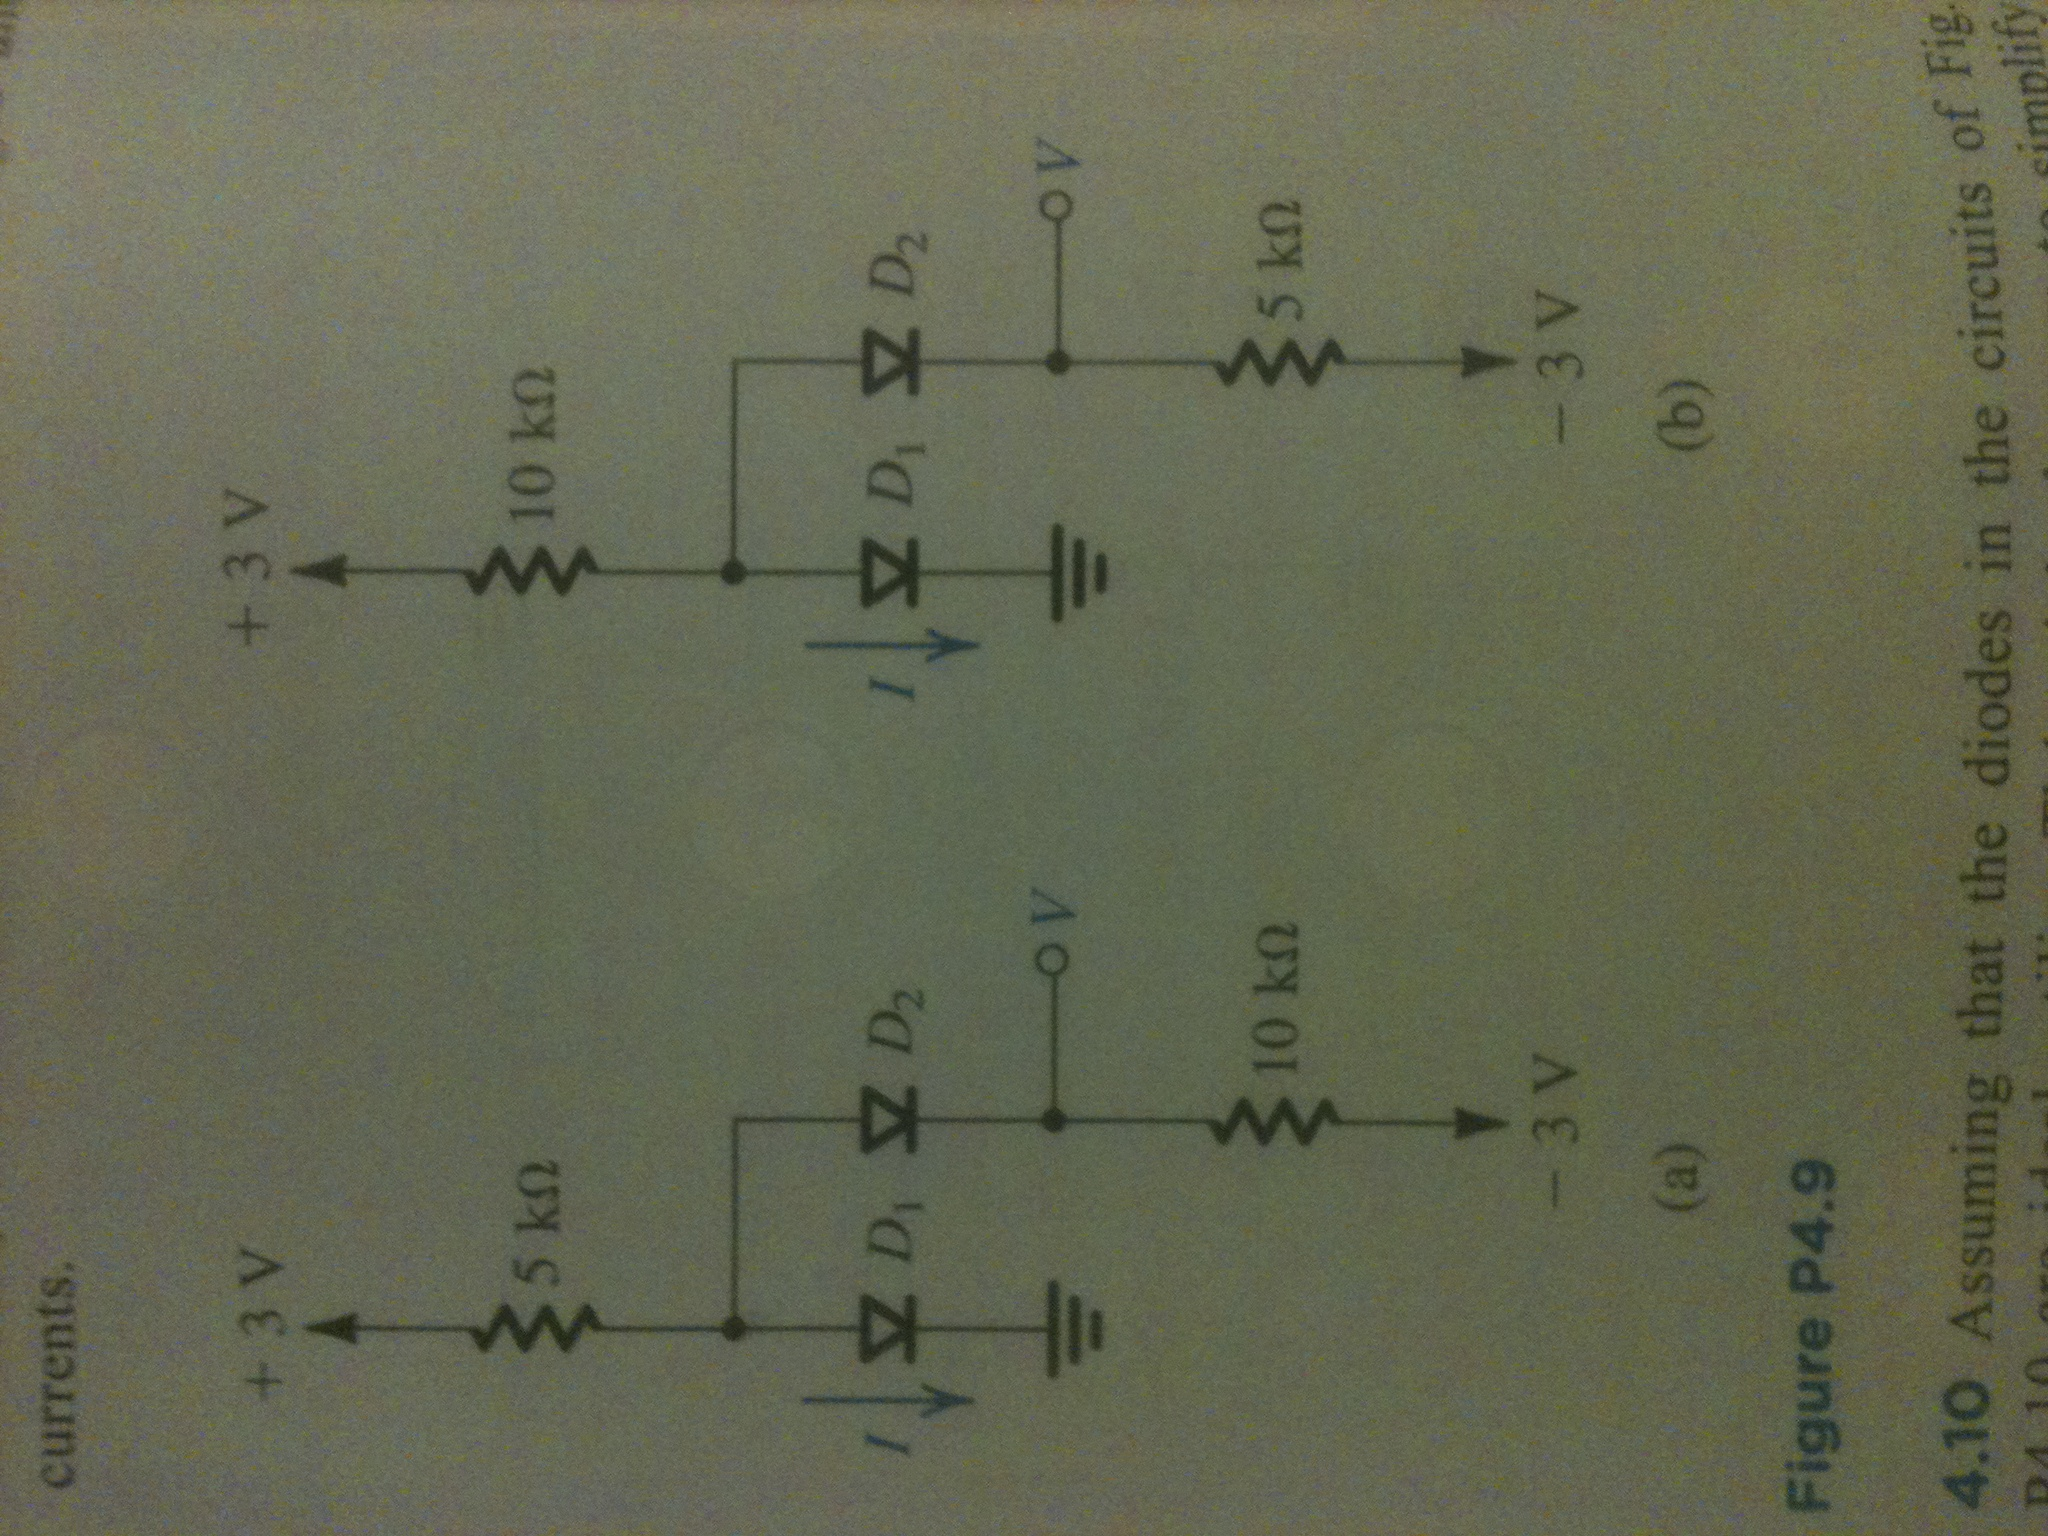 Question 4.41 asks to solve for the labeled voltag